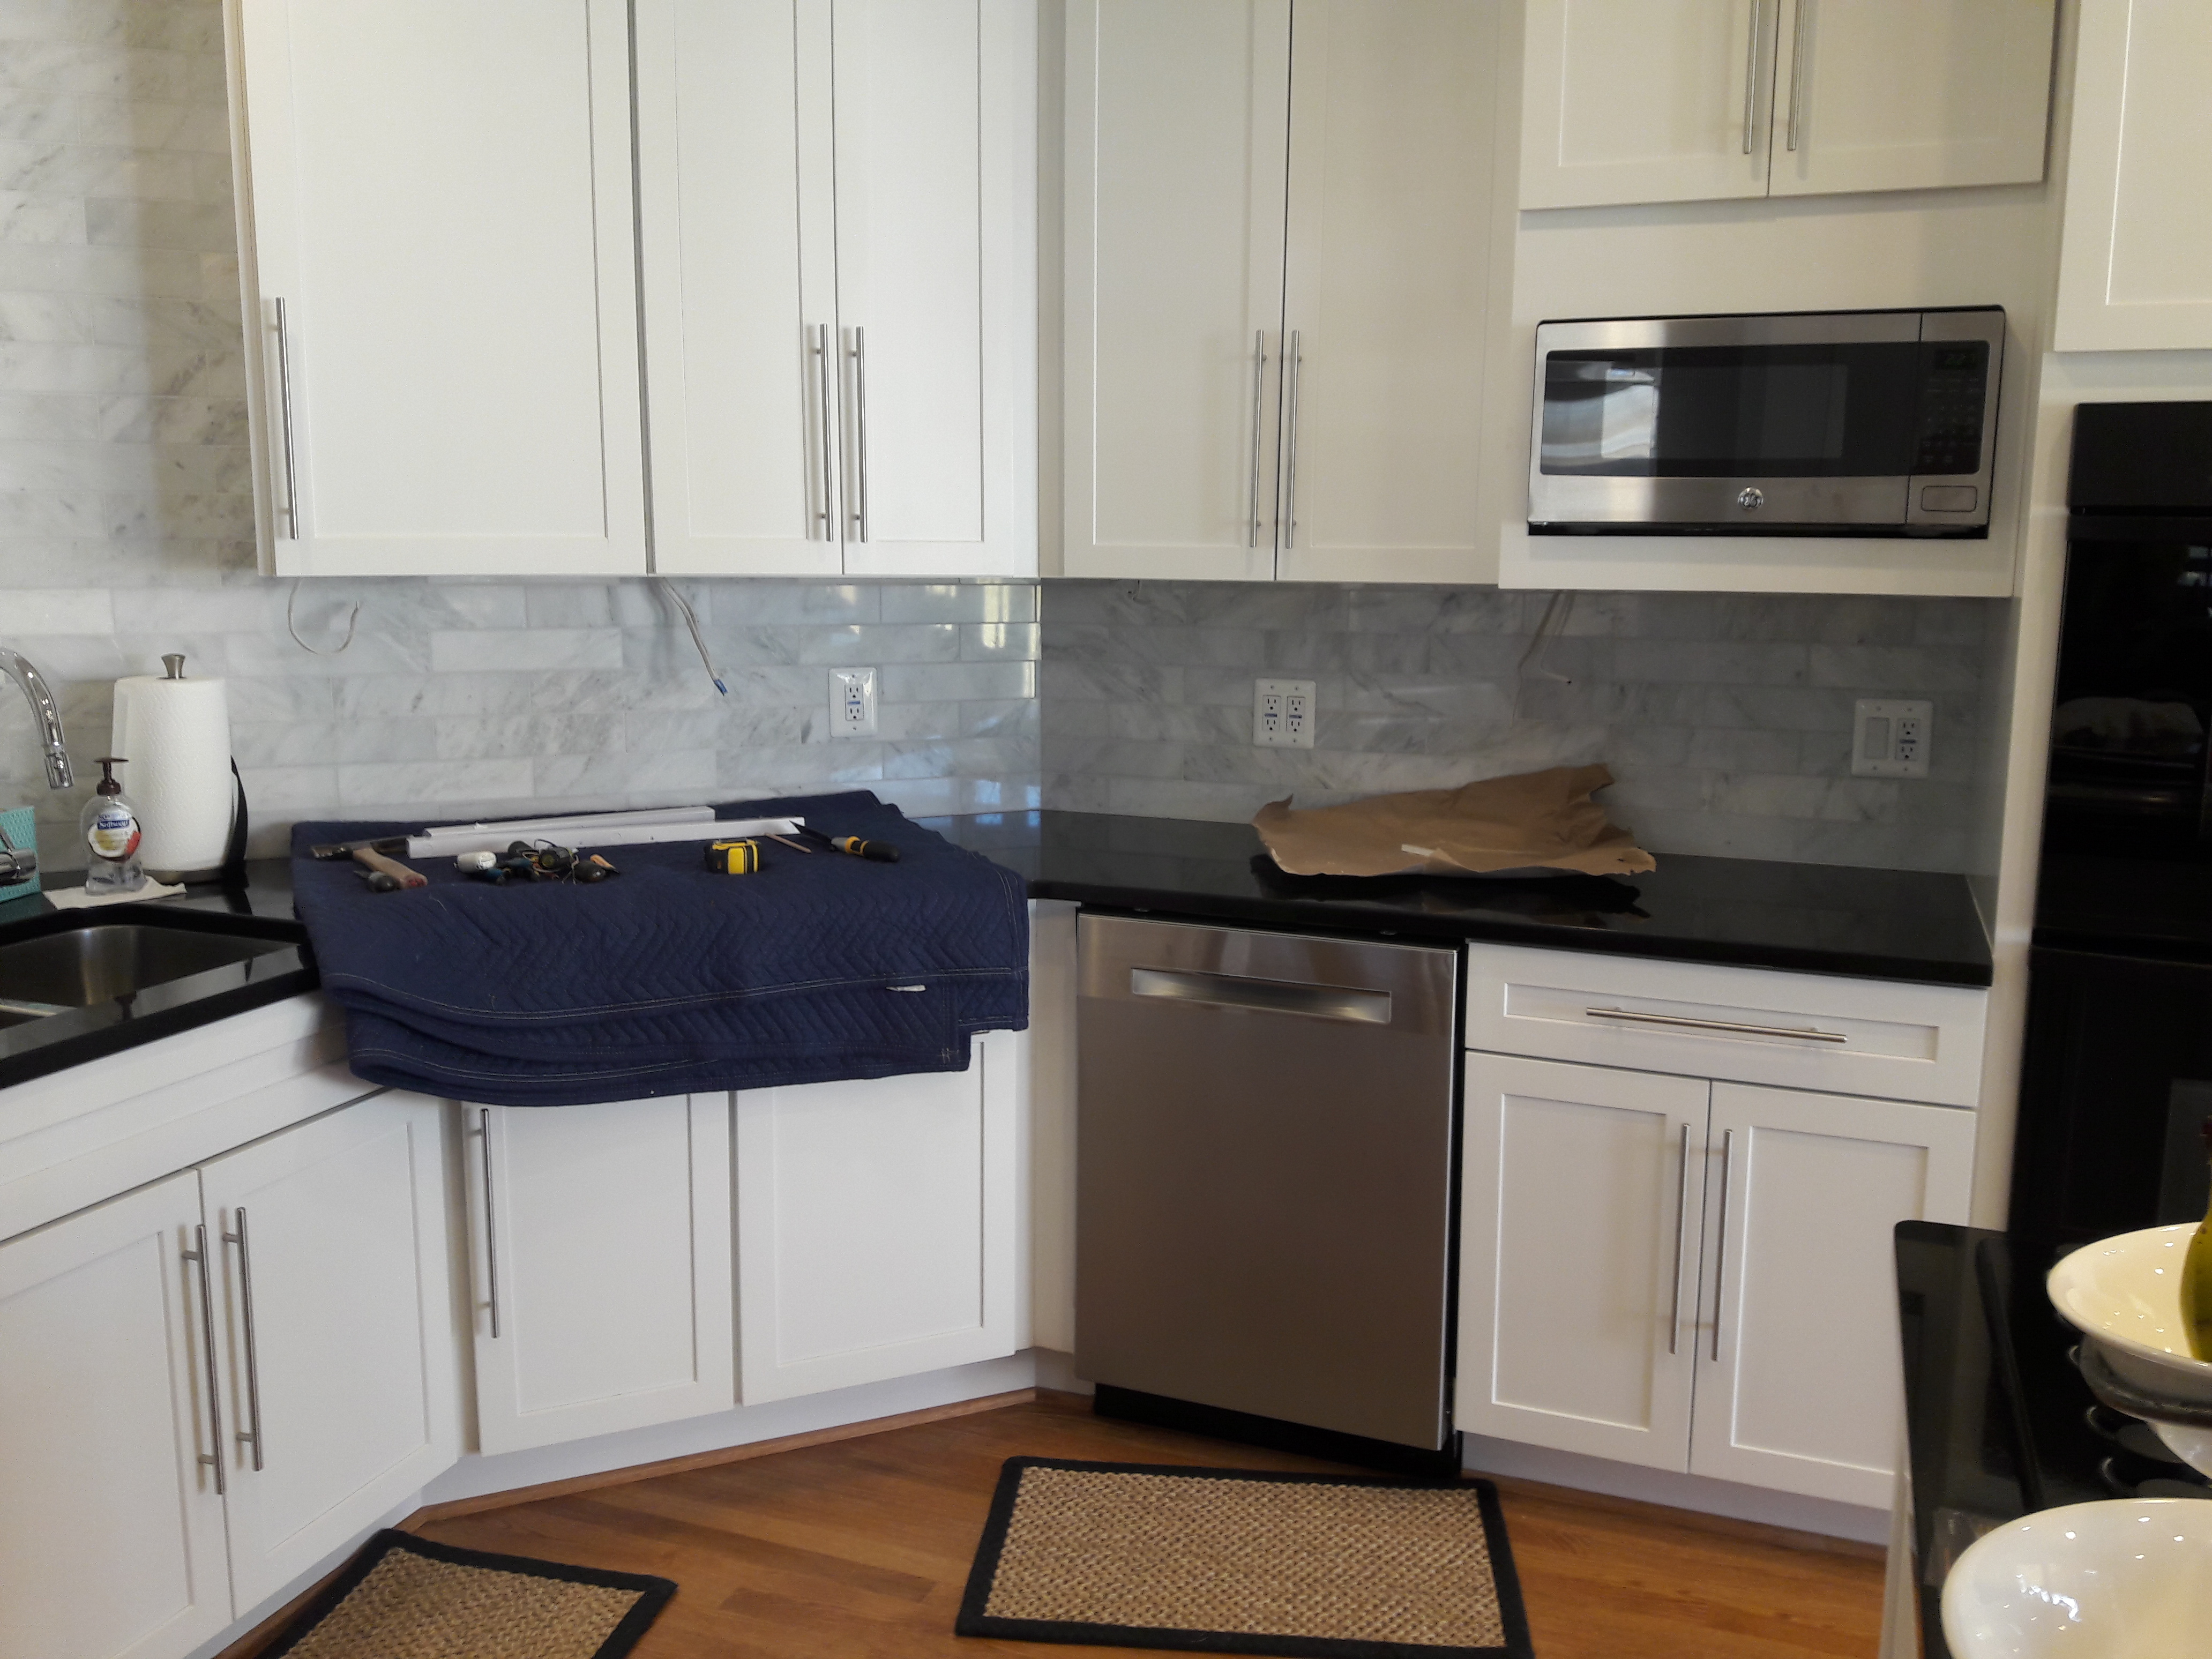 Kitchen counter LED before